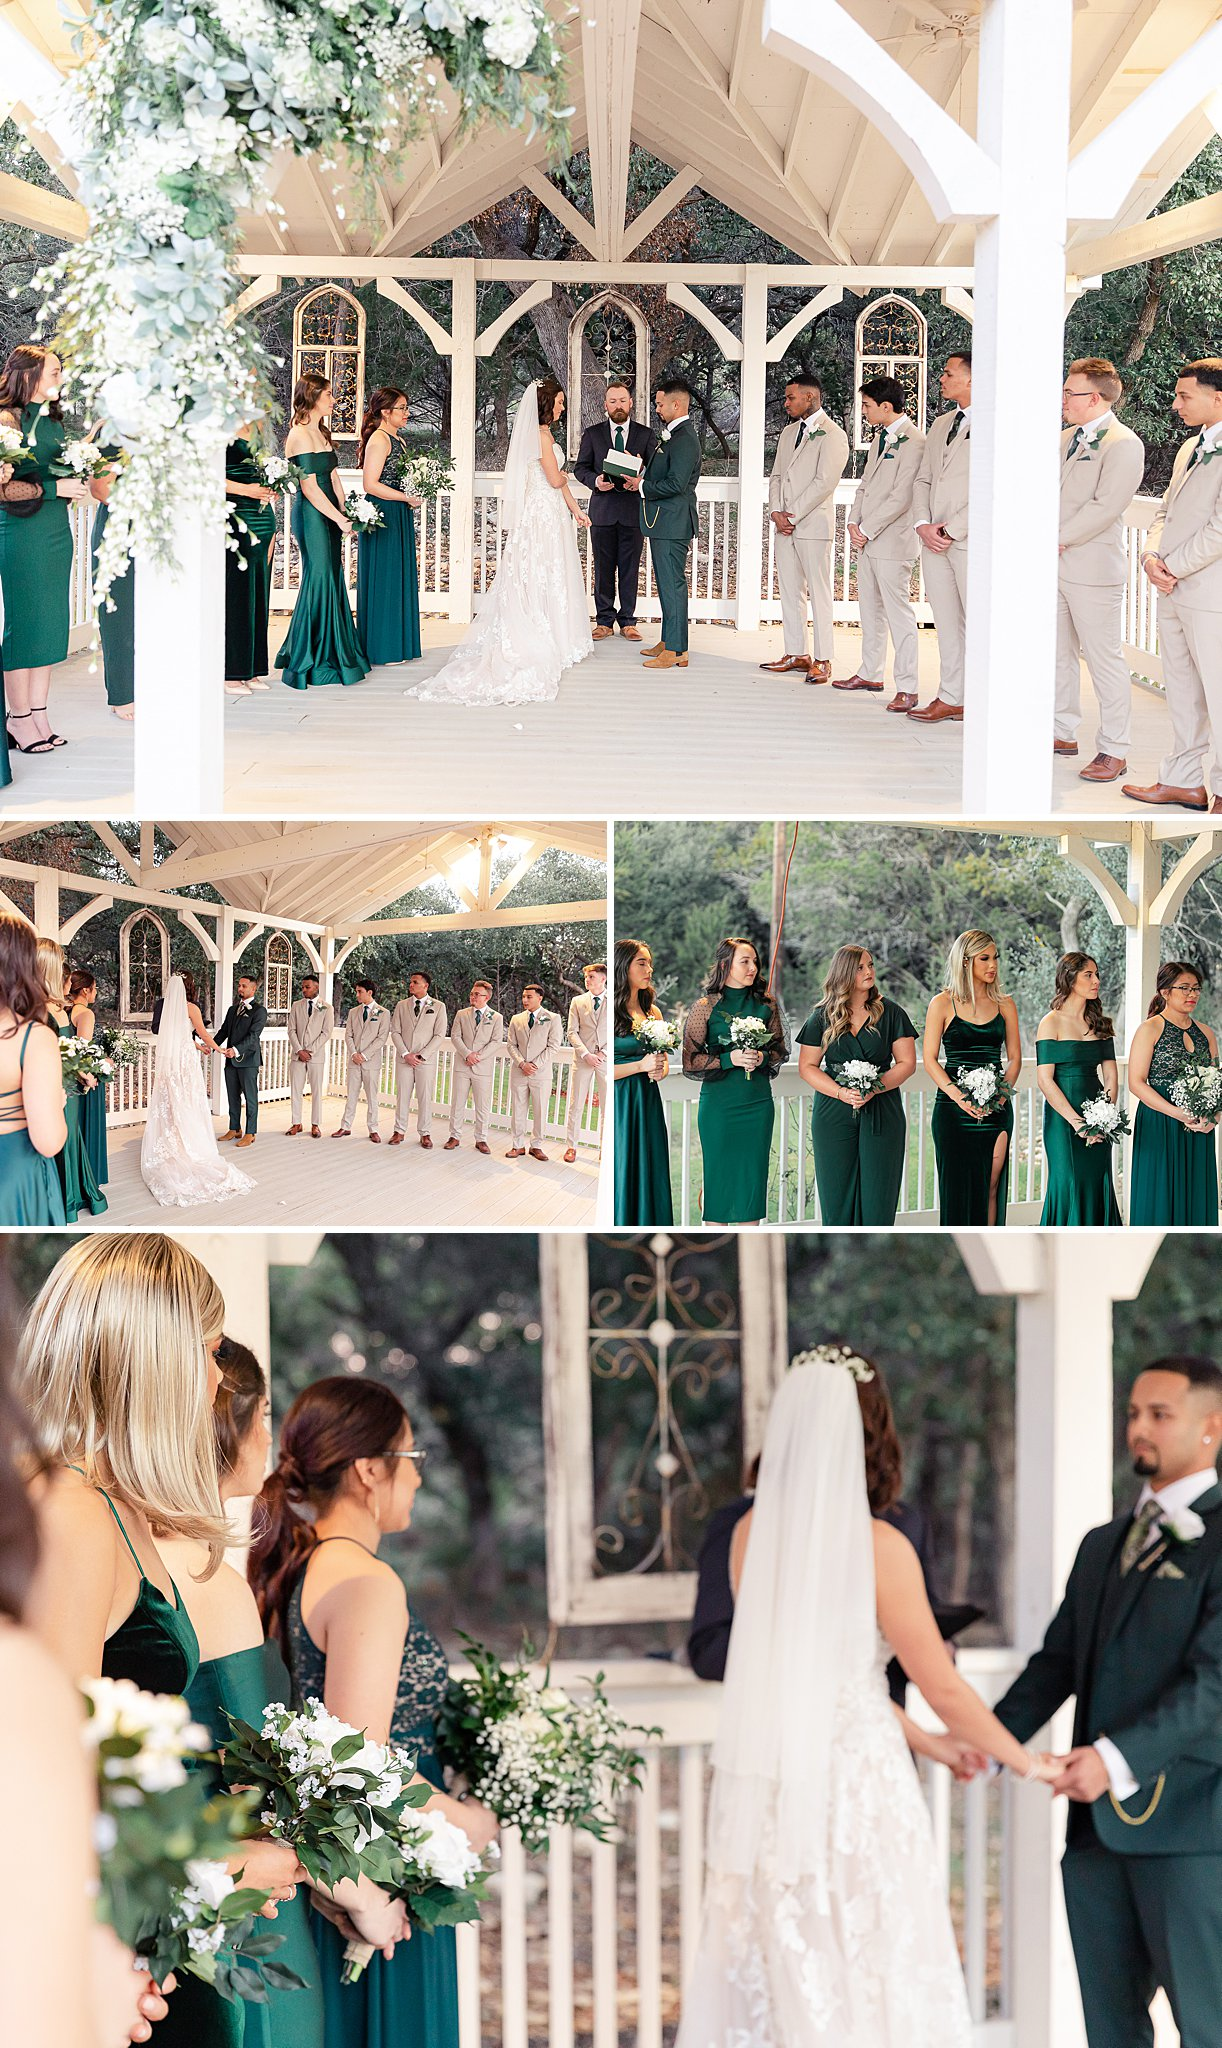 Carly-Barton-Photography-Texas-Wedding-Photographer-Western-Sky-Wedding-Event-Venue-Emerald-Green-Theme_0023.jpg